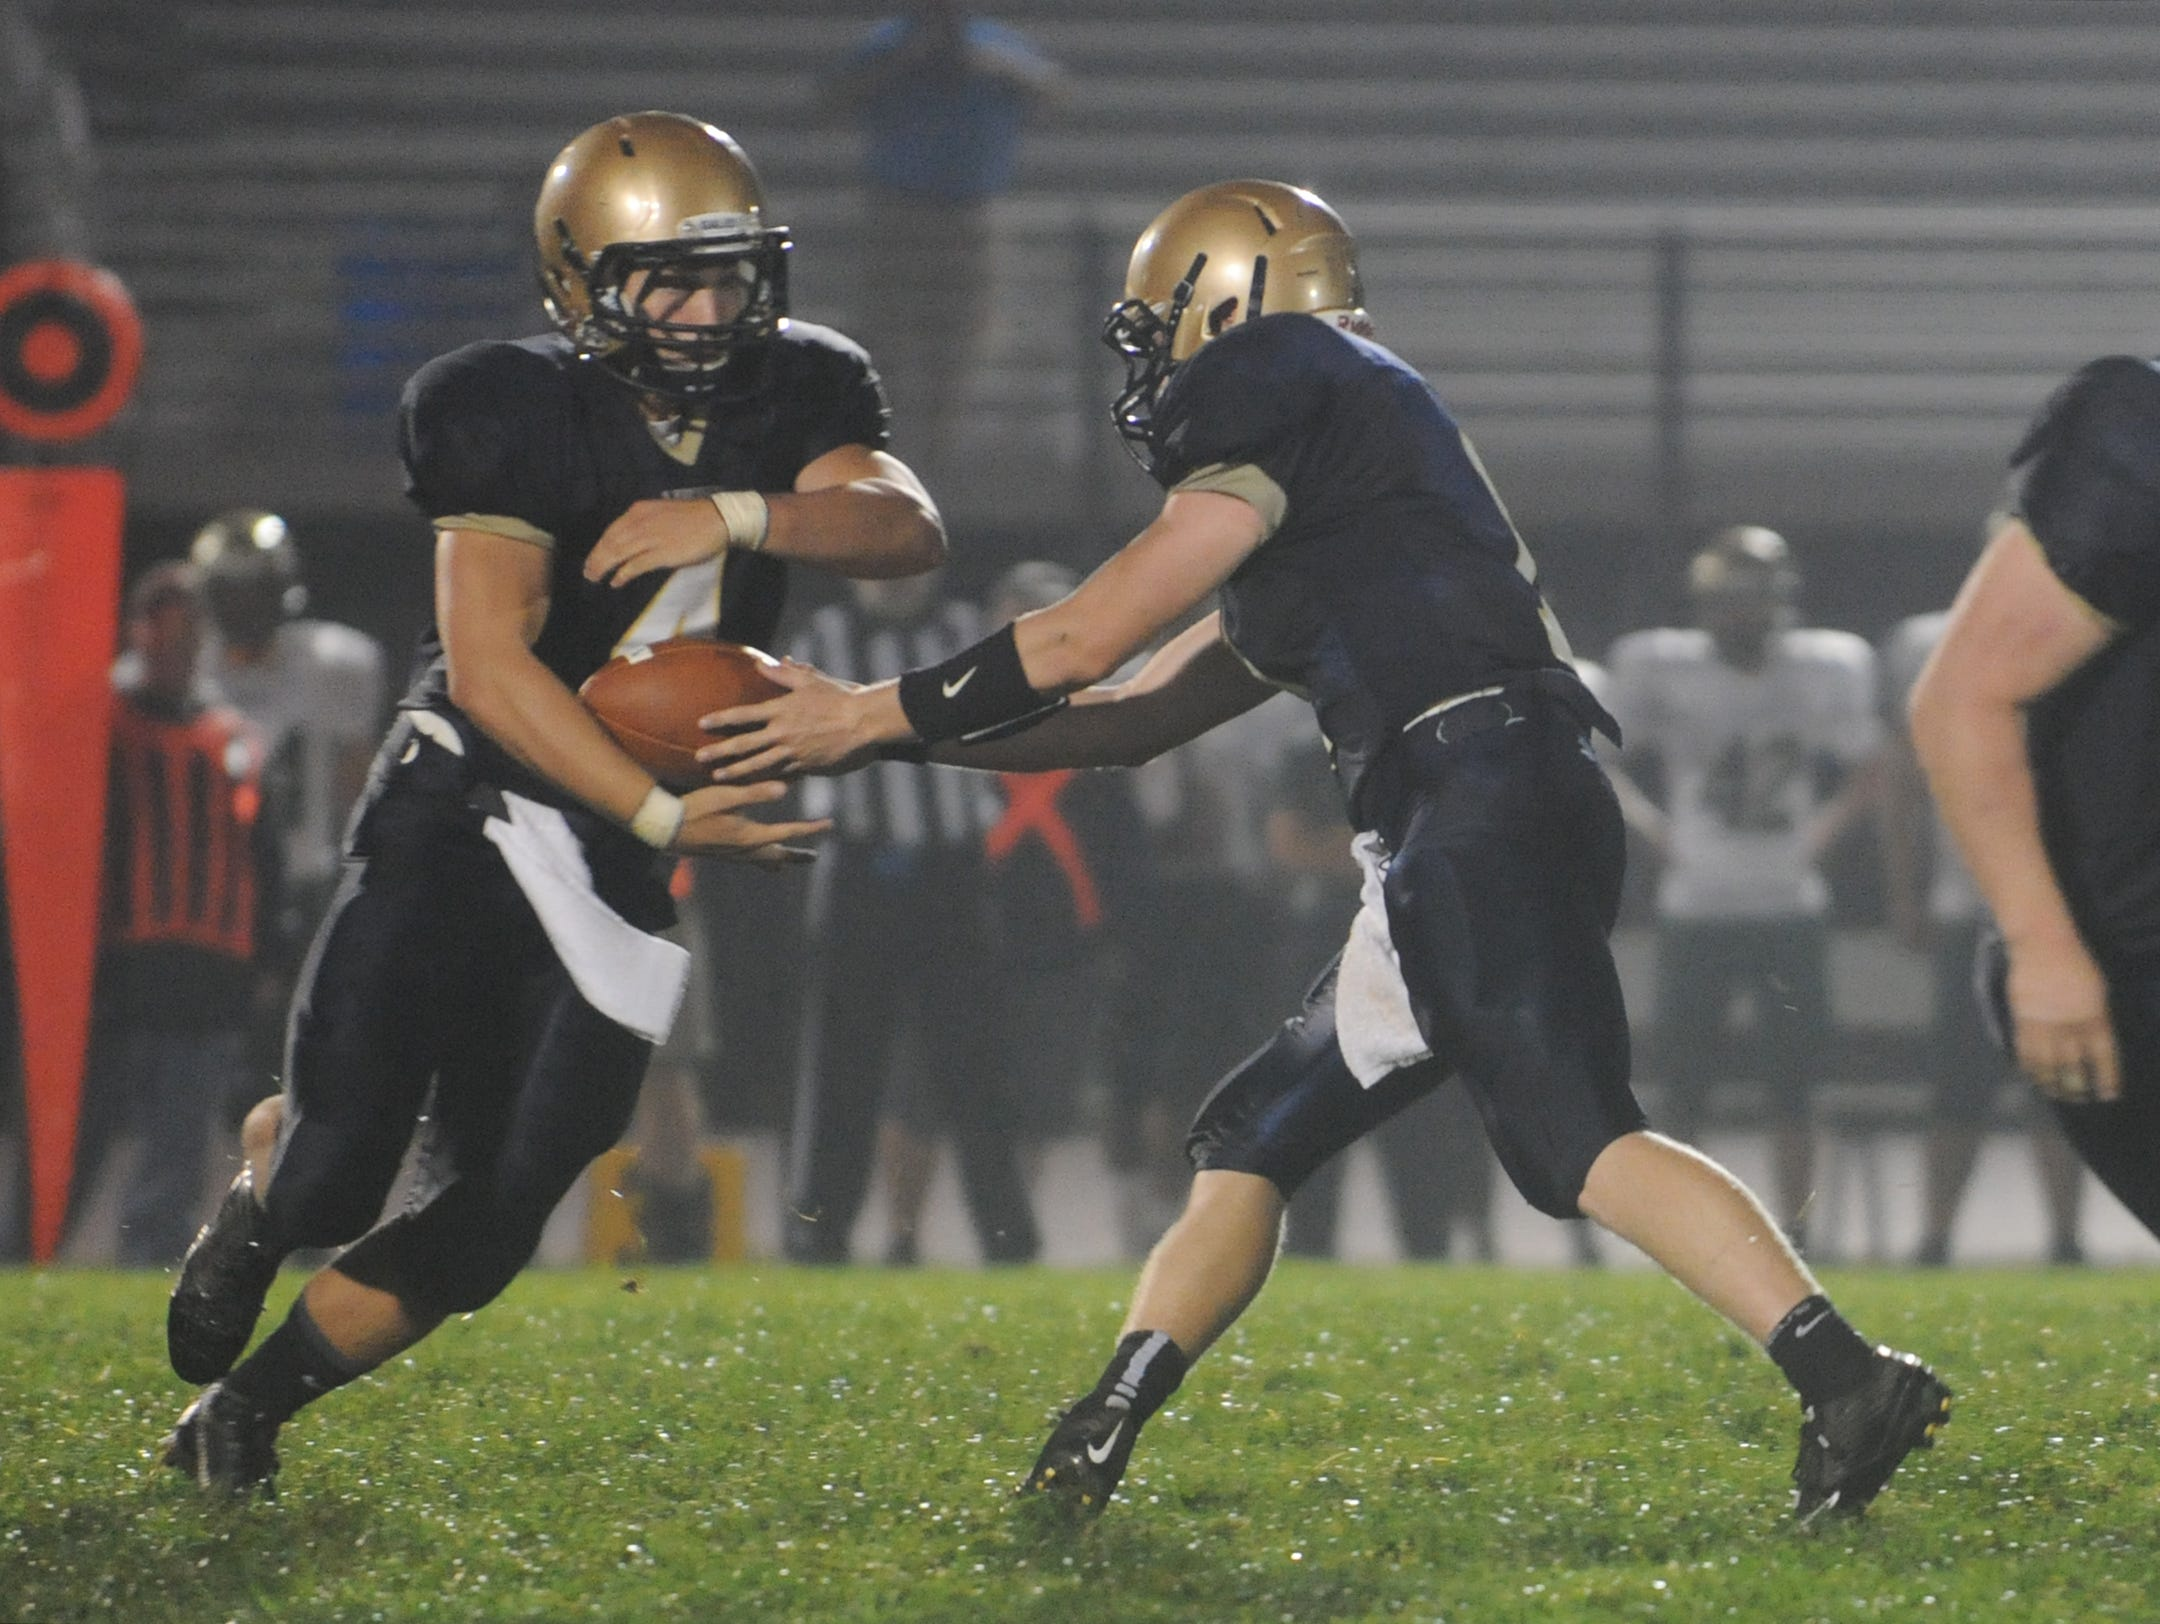 Lancaster's Noah Dryden, right, hands the ball off to Drew Smith during Lancaster's game against Dublin Jerome Friday, Sept. 4, 2015, at Fulton Field. The Gales defeated the Celtics 33-0.